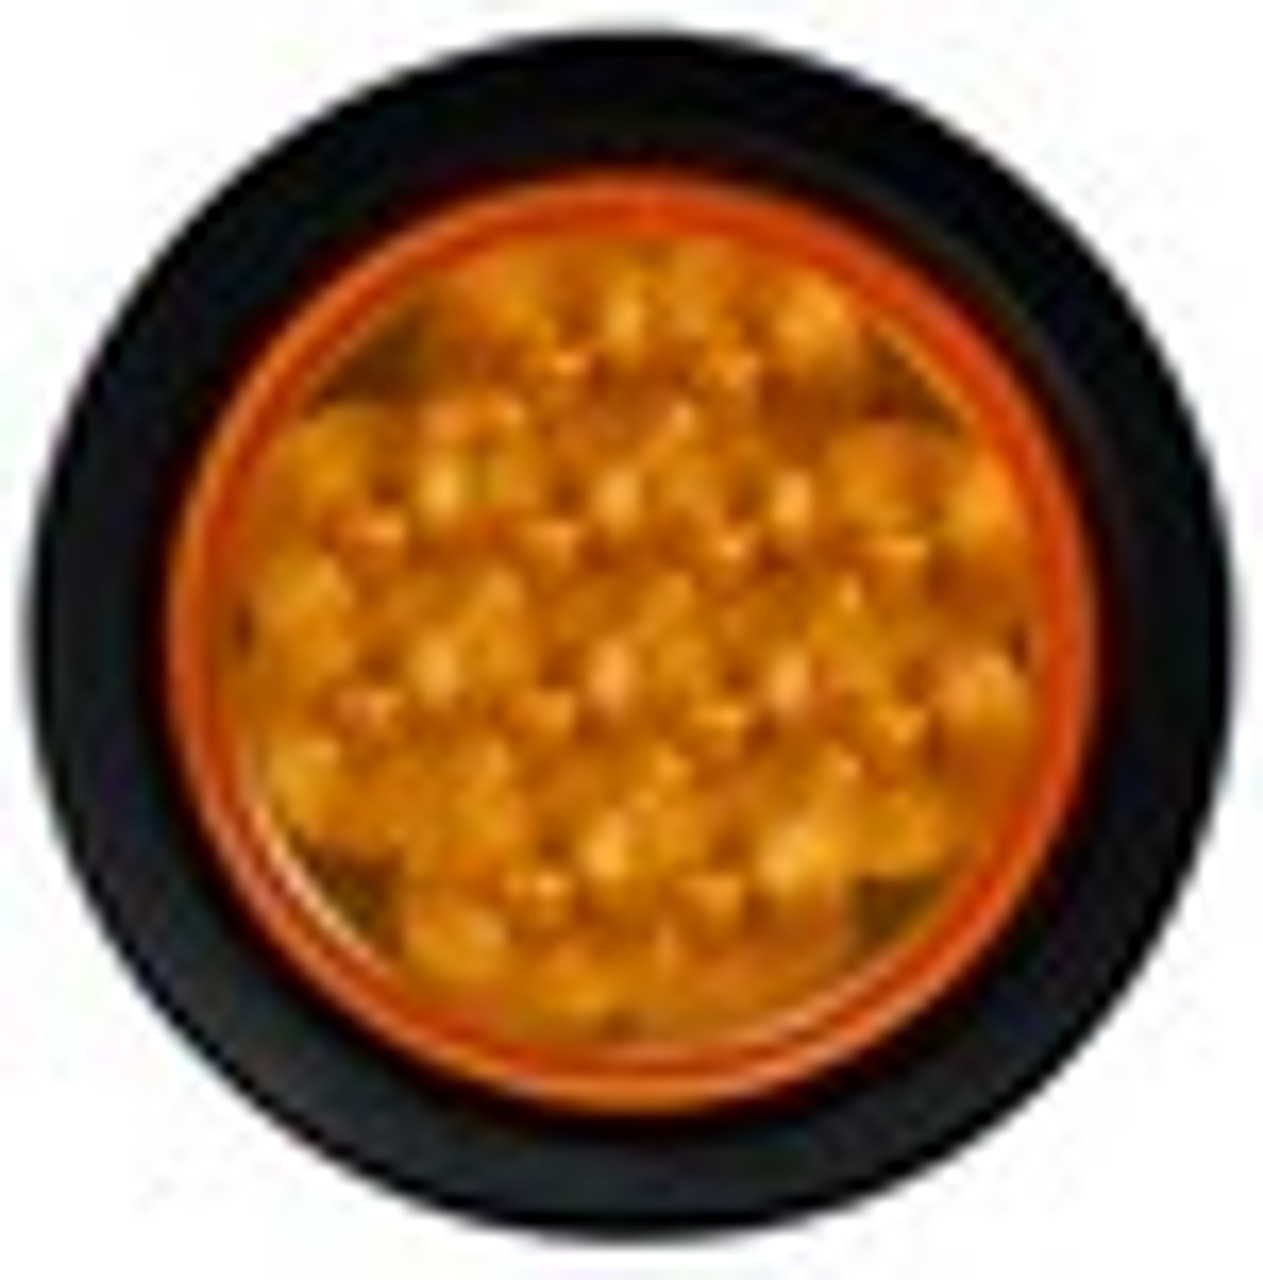 4 inch Round LED Indicator Light with Rubber Grommet. Multi-Volt, 12 & 24v DC Systems